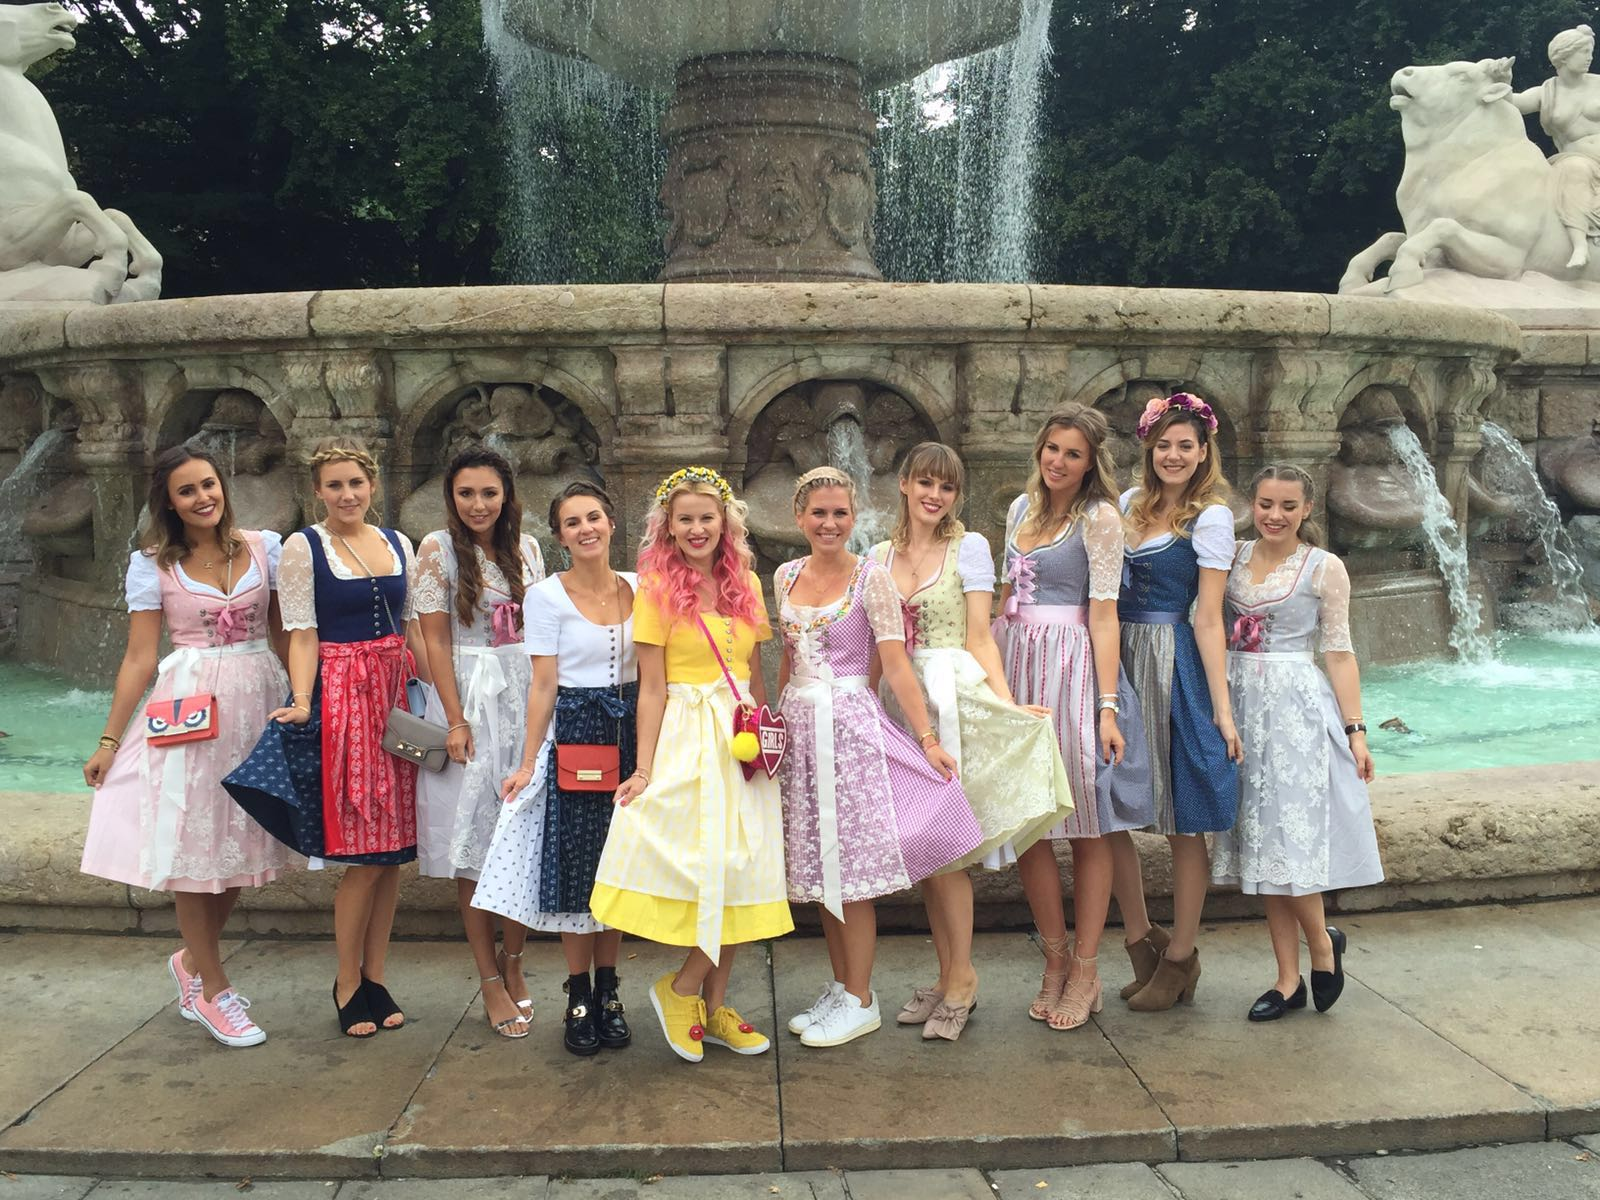 blogwalk-wiesn-2016-limberry-dirndl-gruppe